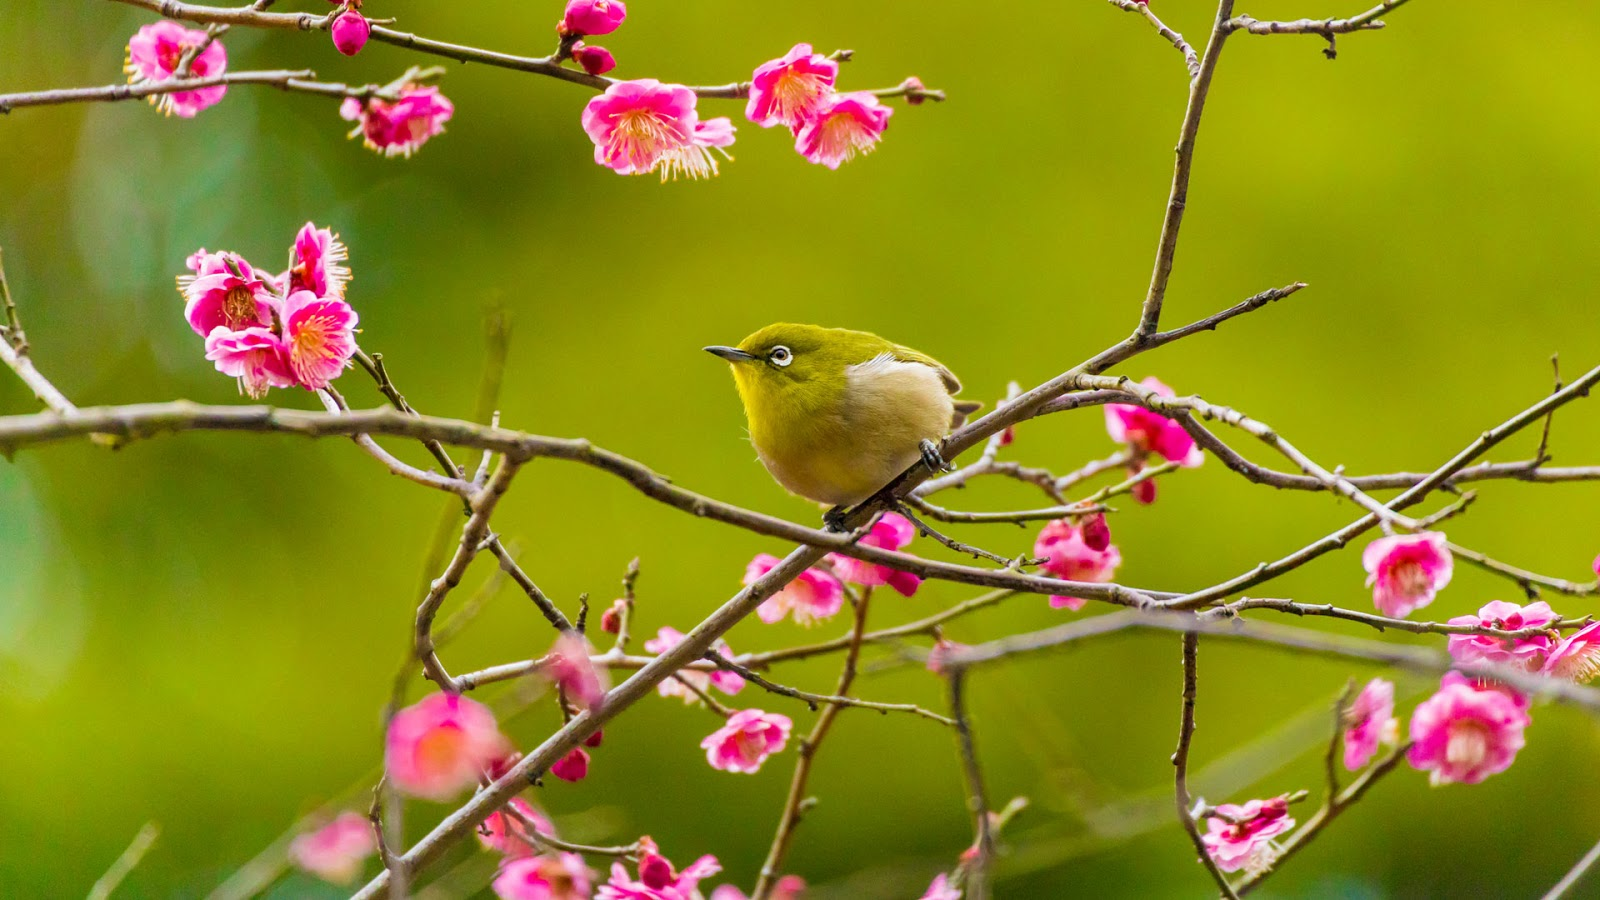 Warbling white-eye among plum blossoms in Yokohama, Japan © e185rpm/Adobe stock